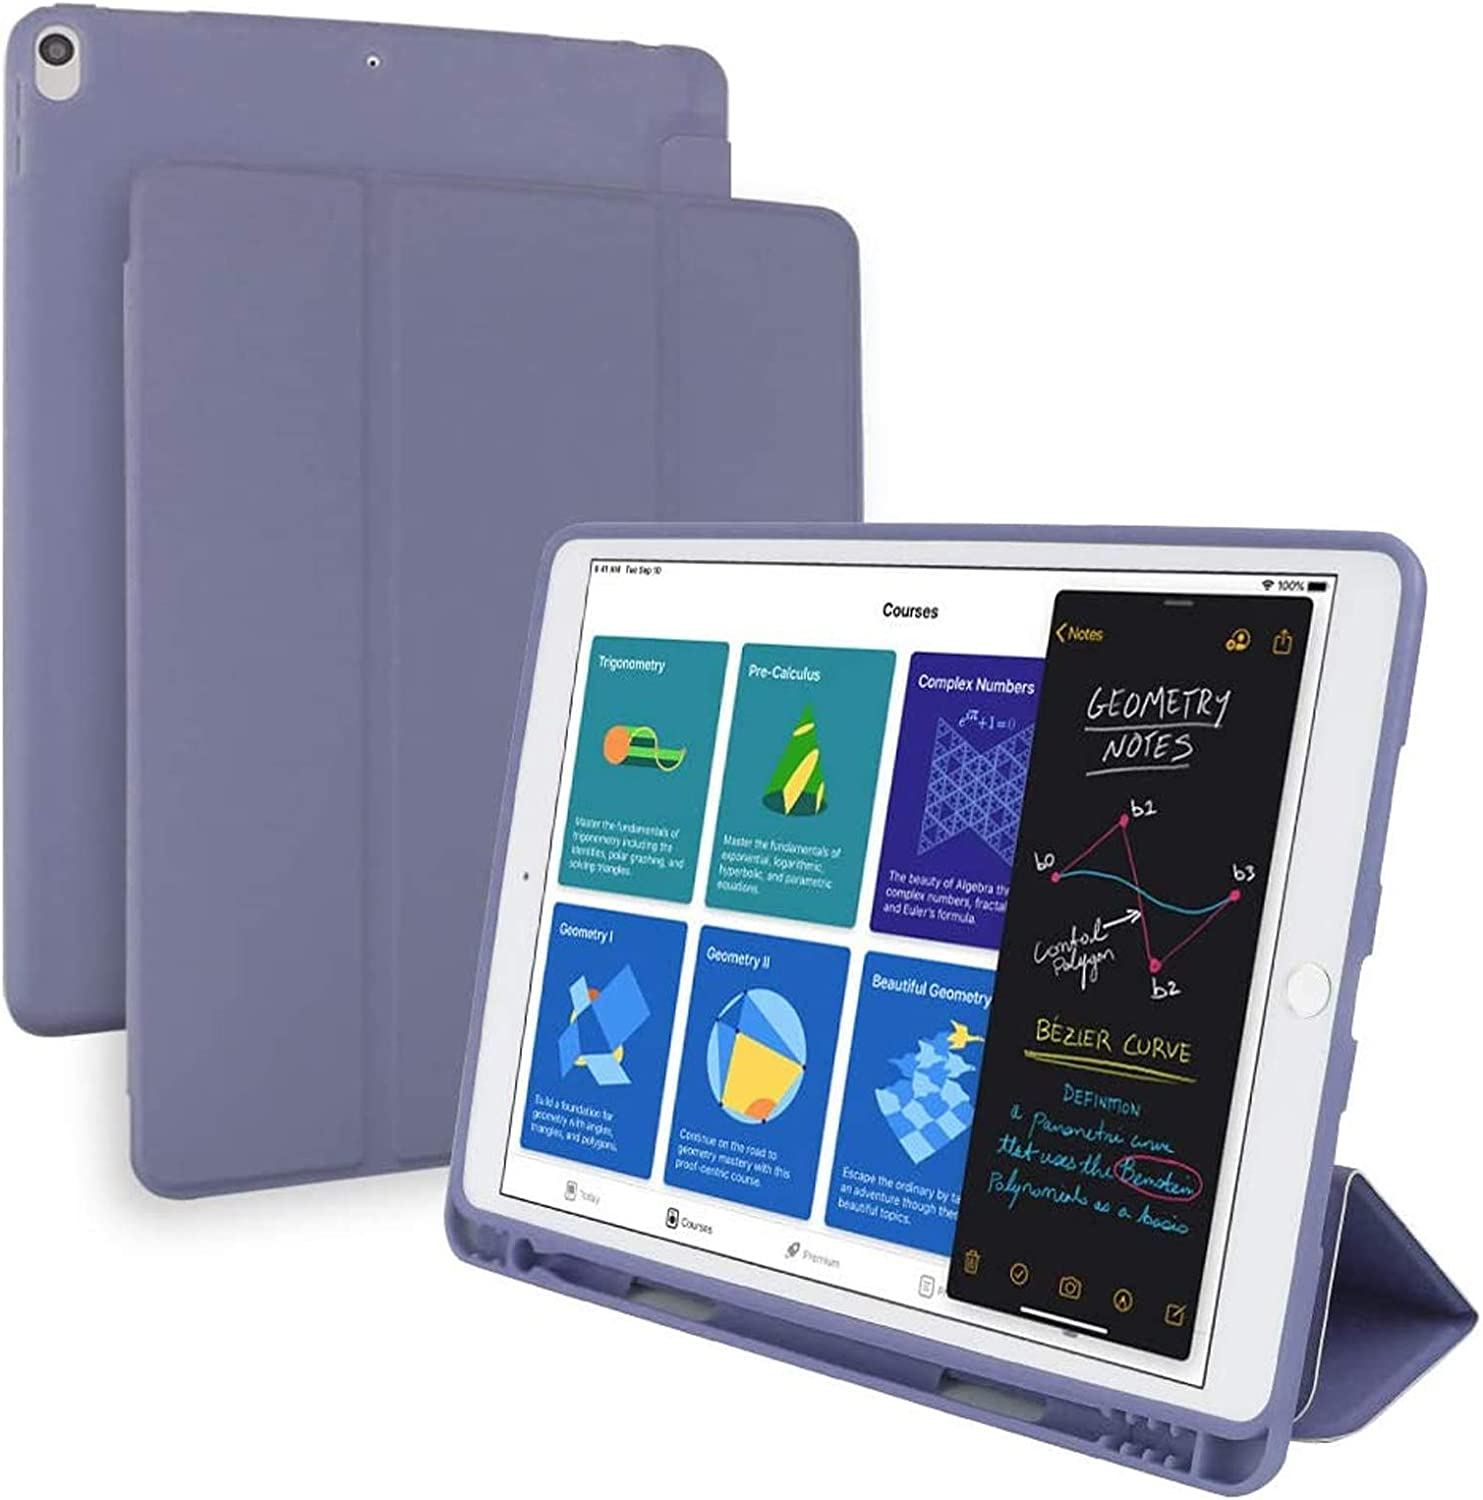 SlimShell PU Case Cover for iPad Air 3 (10.5-inch 2019) and iPad Pro 10.5 with Built-in Pencil Holder-Smart Stand Soft TPU Silicone Back Cover, Auto Wake/Sleep for iPad 10.5 inch (Purple)